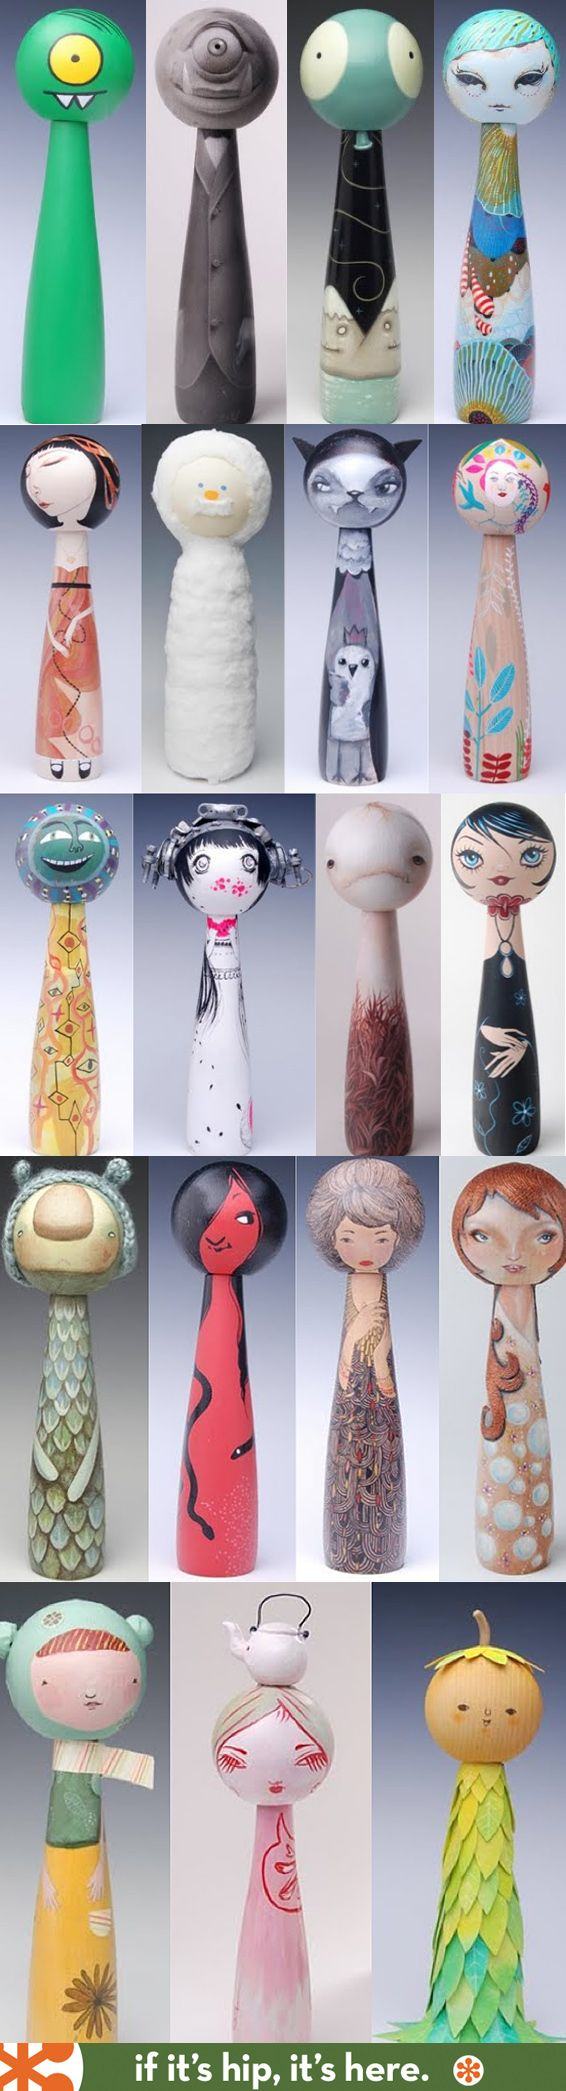 100 Artist Designed Kokeshi Dolls great exhibit of a modern take on a traditional japanese folk art